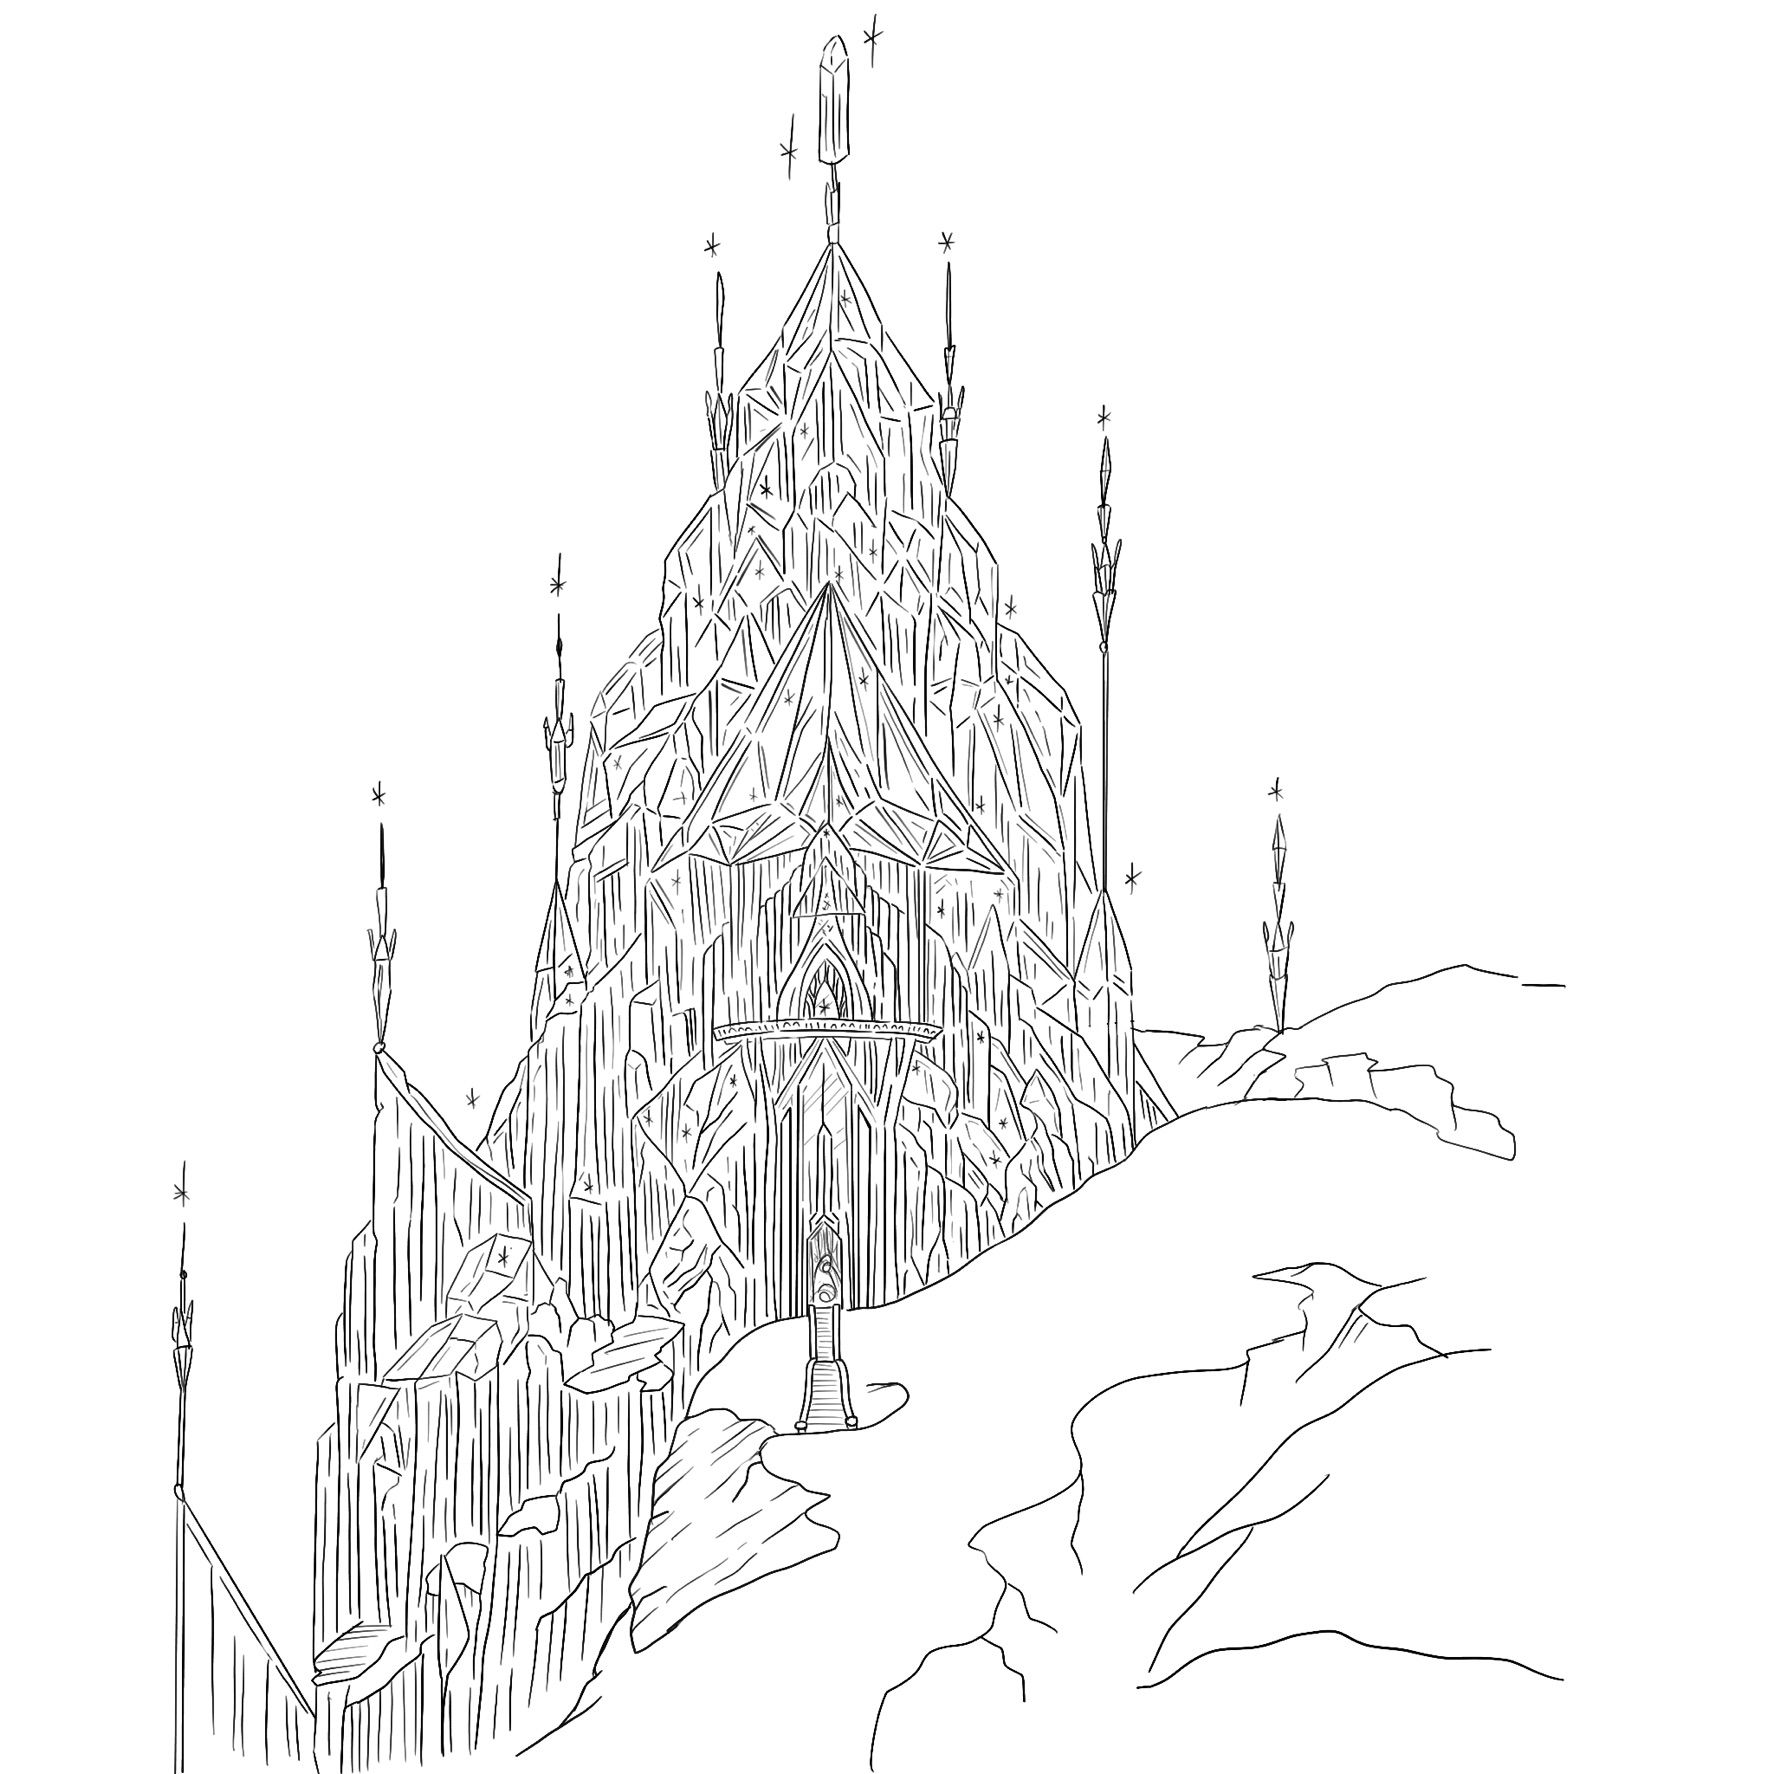 Frozen Elsa S Ice Castle Disney Hand Drawn Illustration Digital File Instant Download Home Decor Colouring Book Elsa And Anna In 2021 Castle Illustration Disney Castle Drawing Drawing Illustration